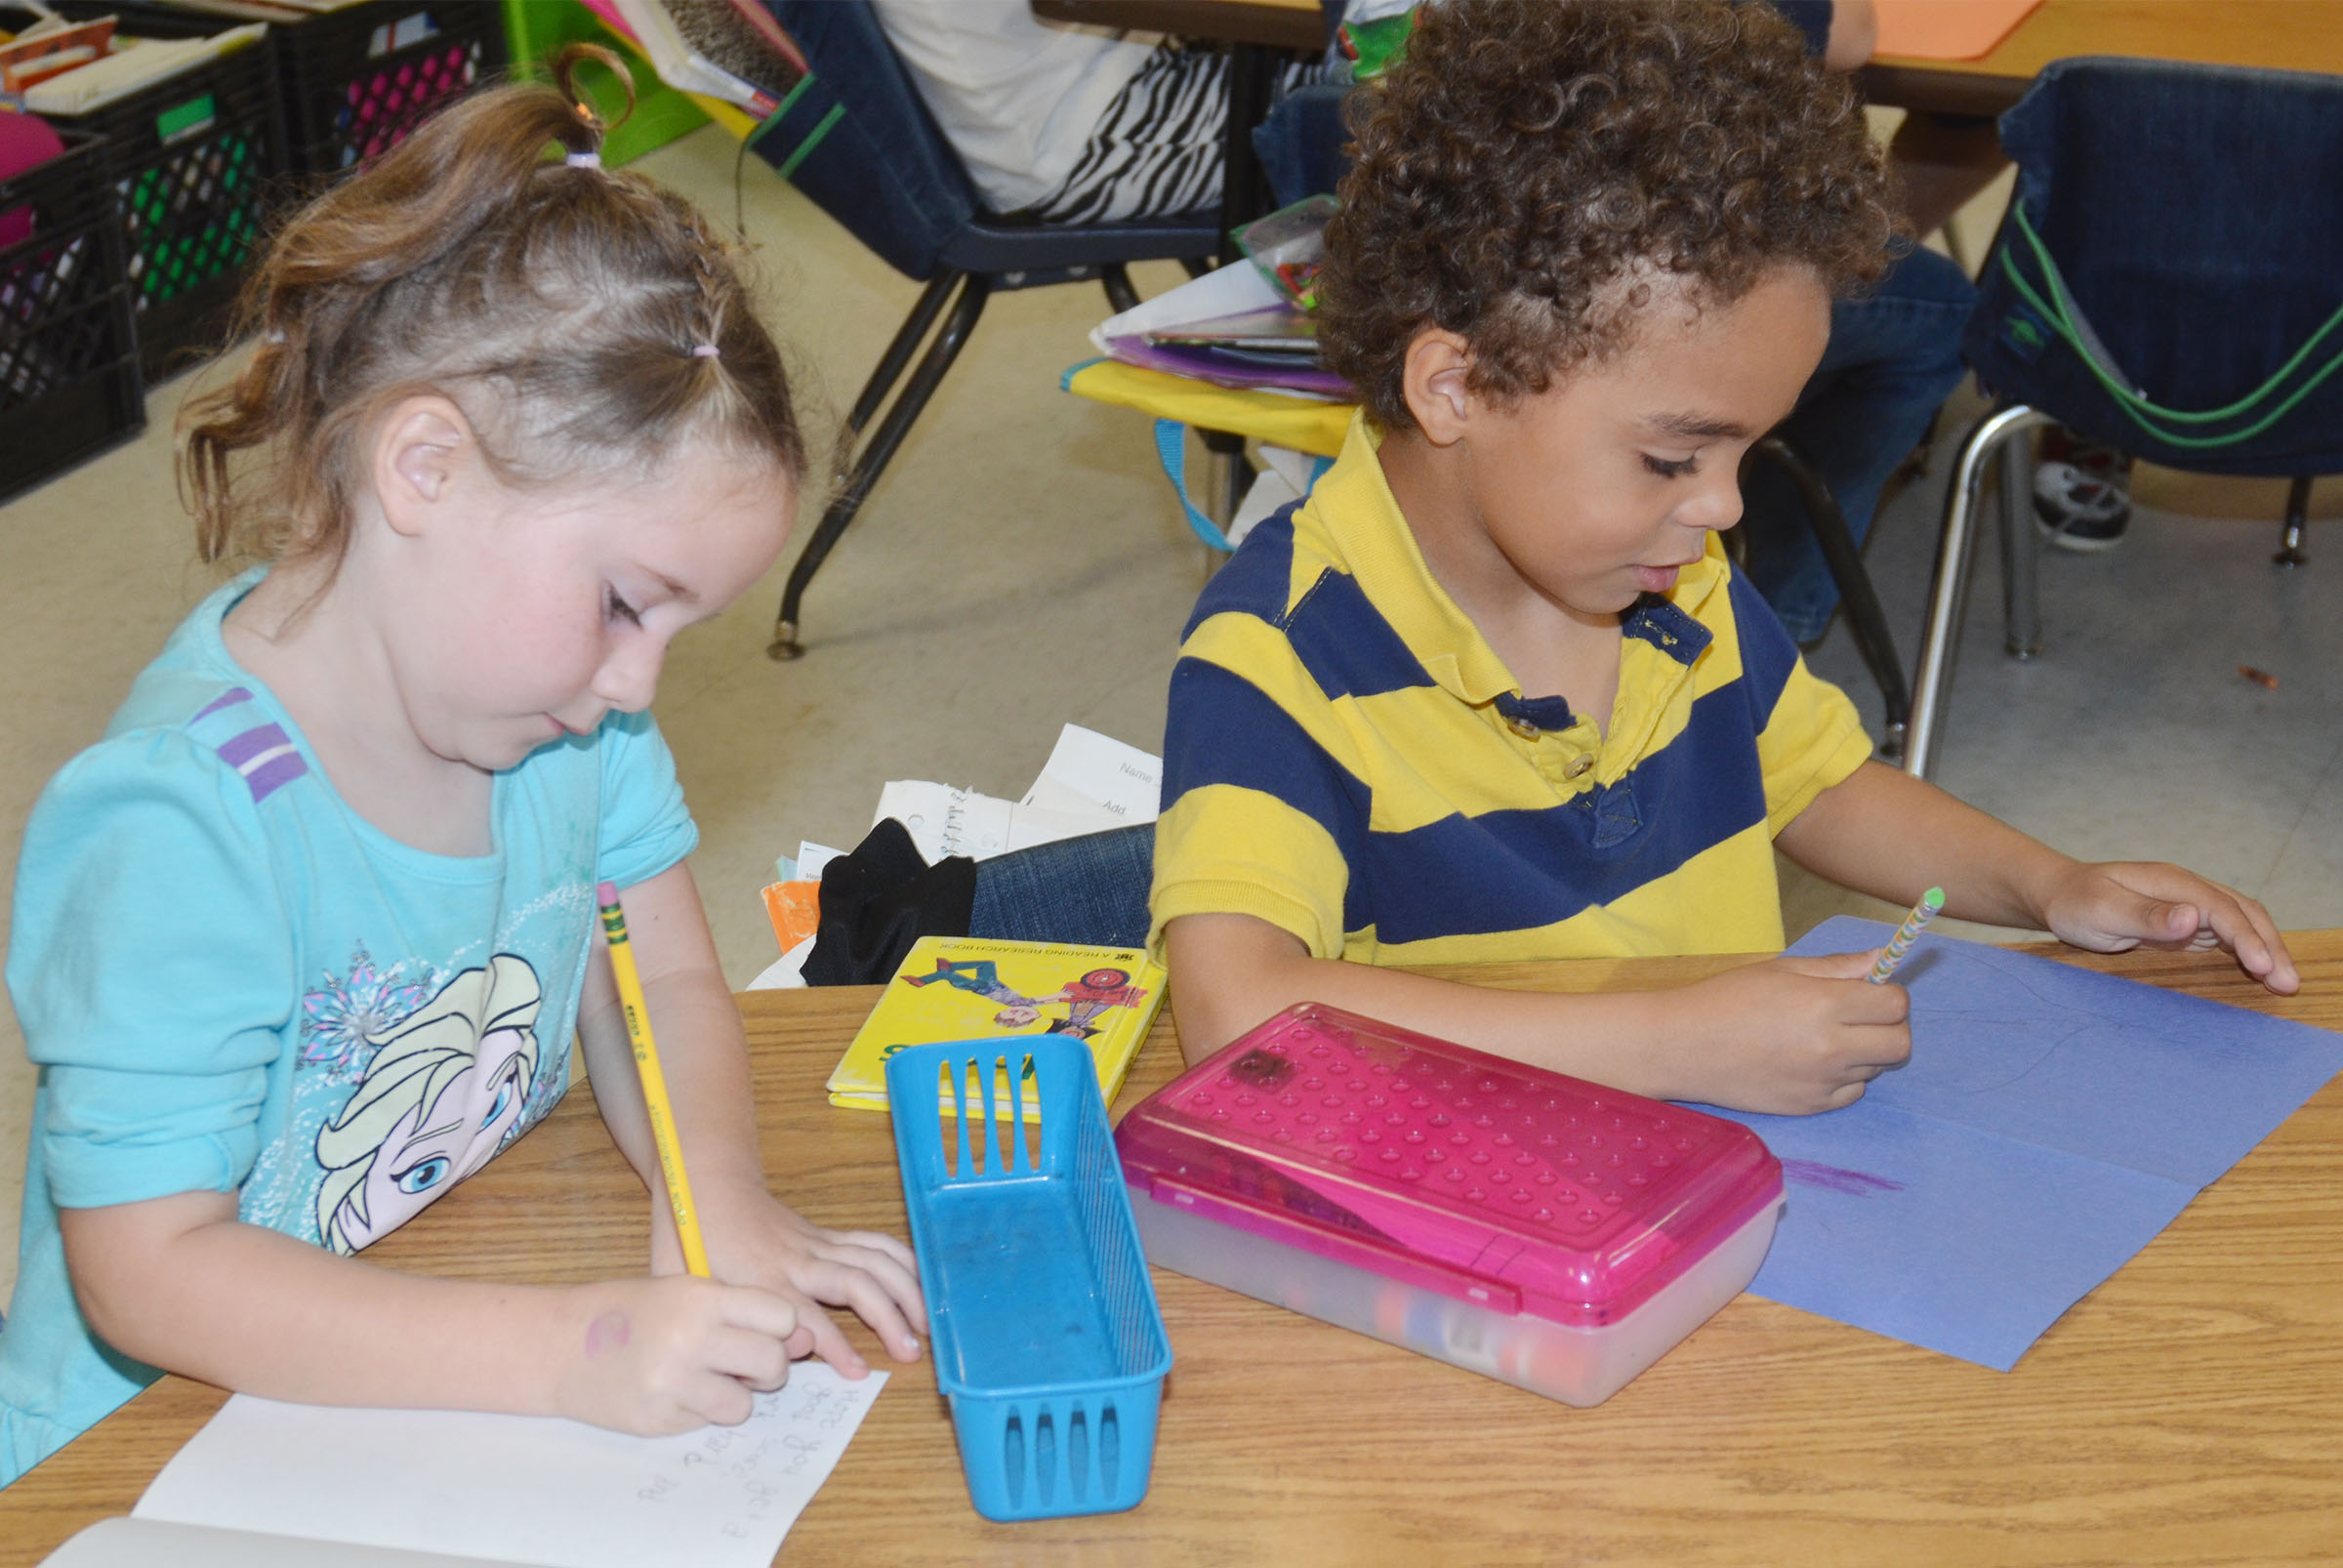 CES first-graders Kinsley Graham, at left, and Javion Milby make cards for third-grade students.